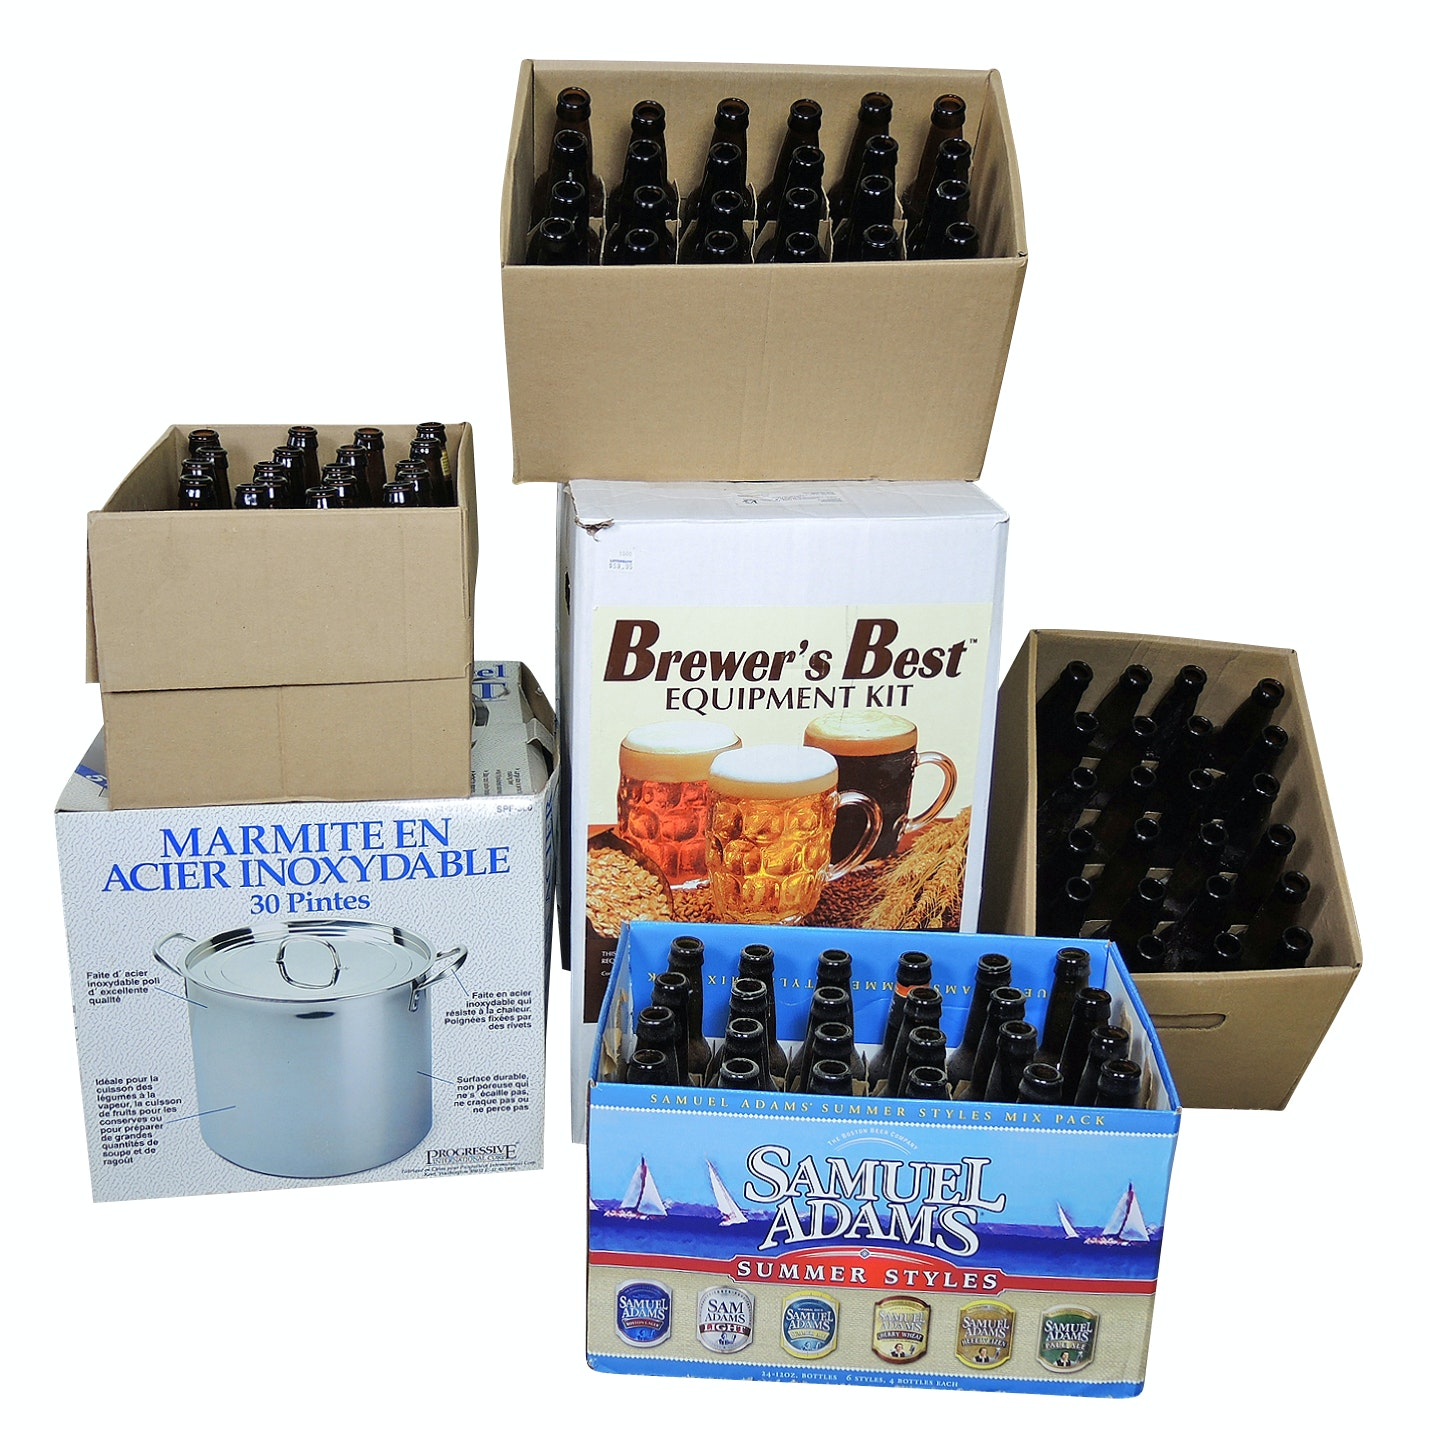 Beer Home Brewing Kit, Bottles and 30 Qt Stainless Steel Stockpot